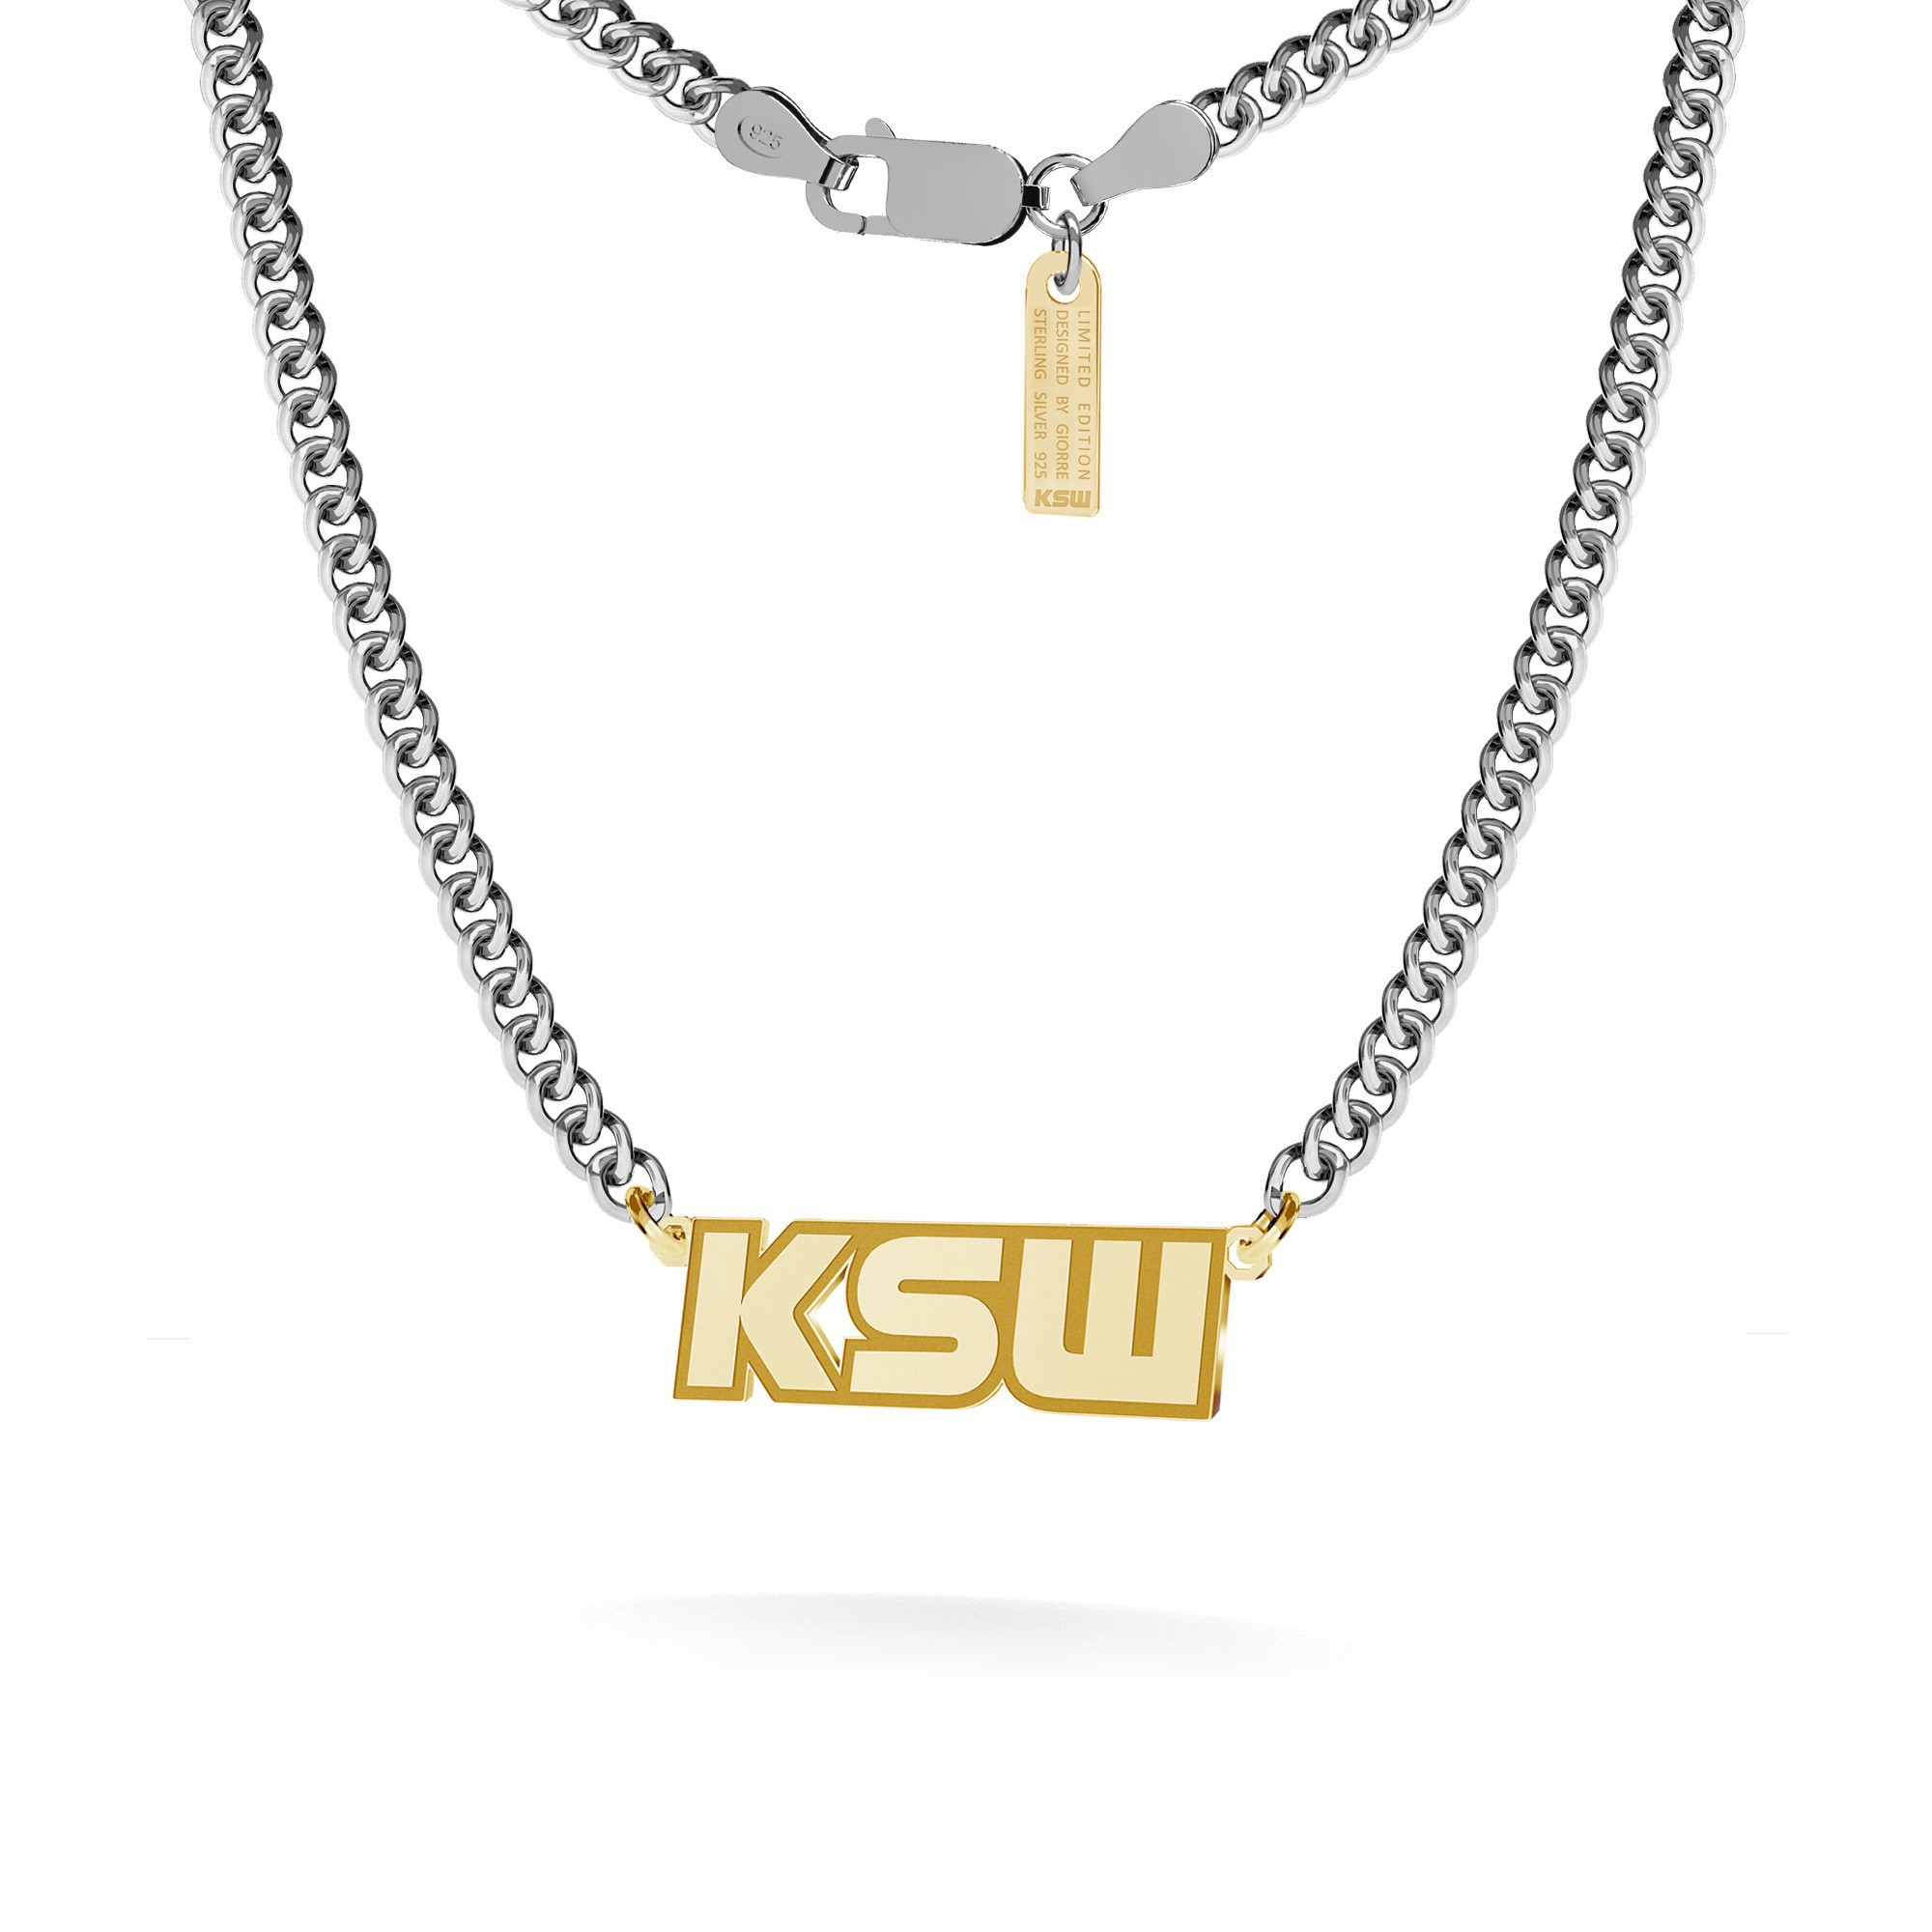 Silver necklace with KSW pendant, curb chain, silver 925